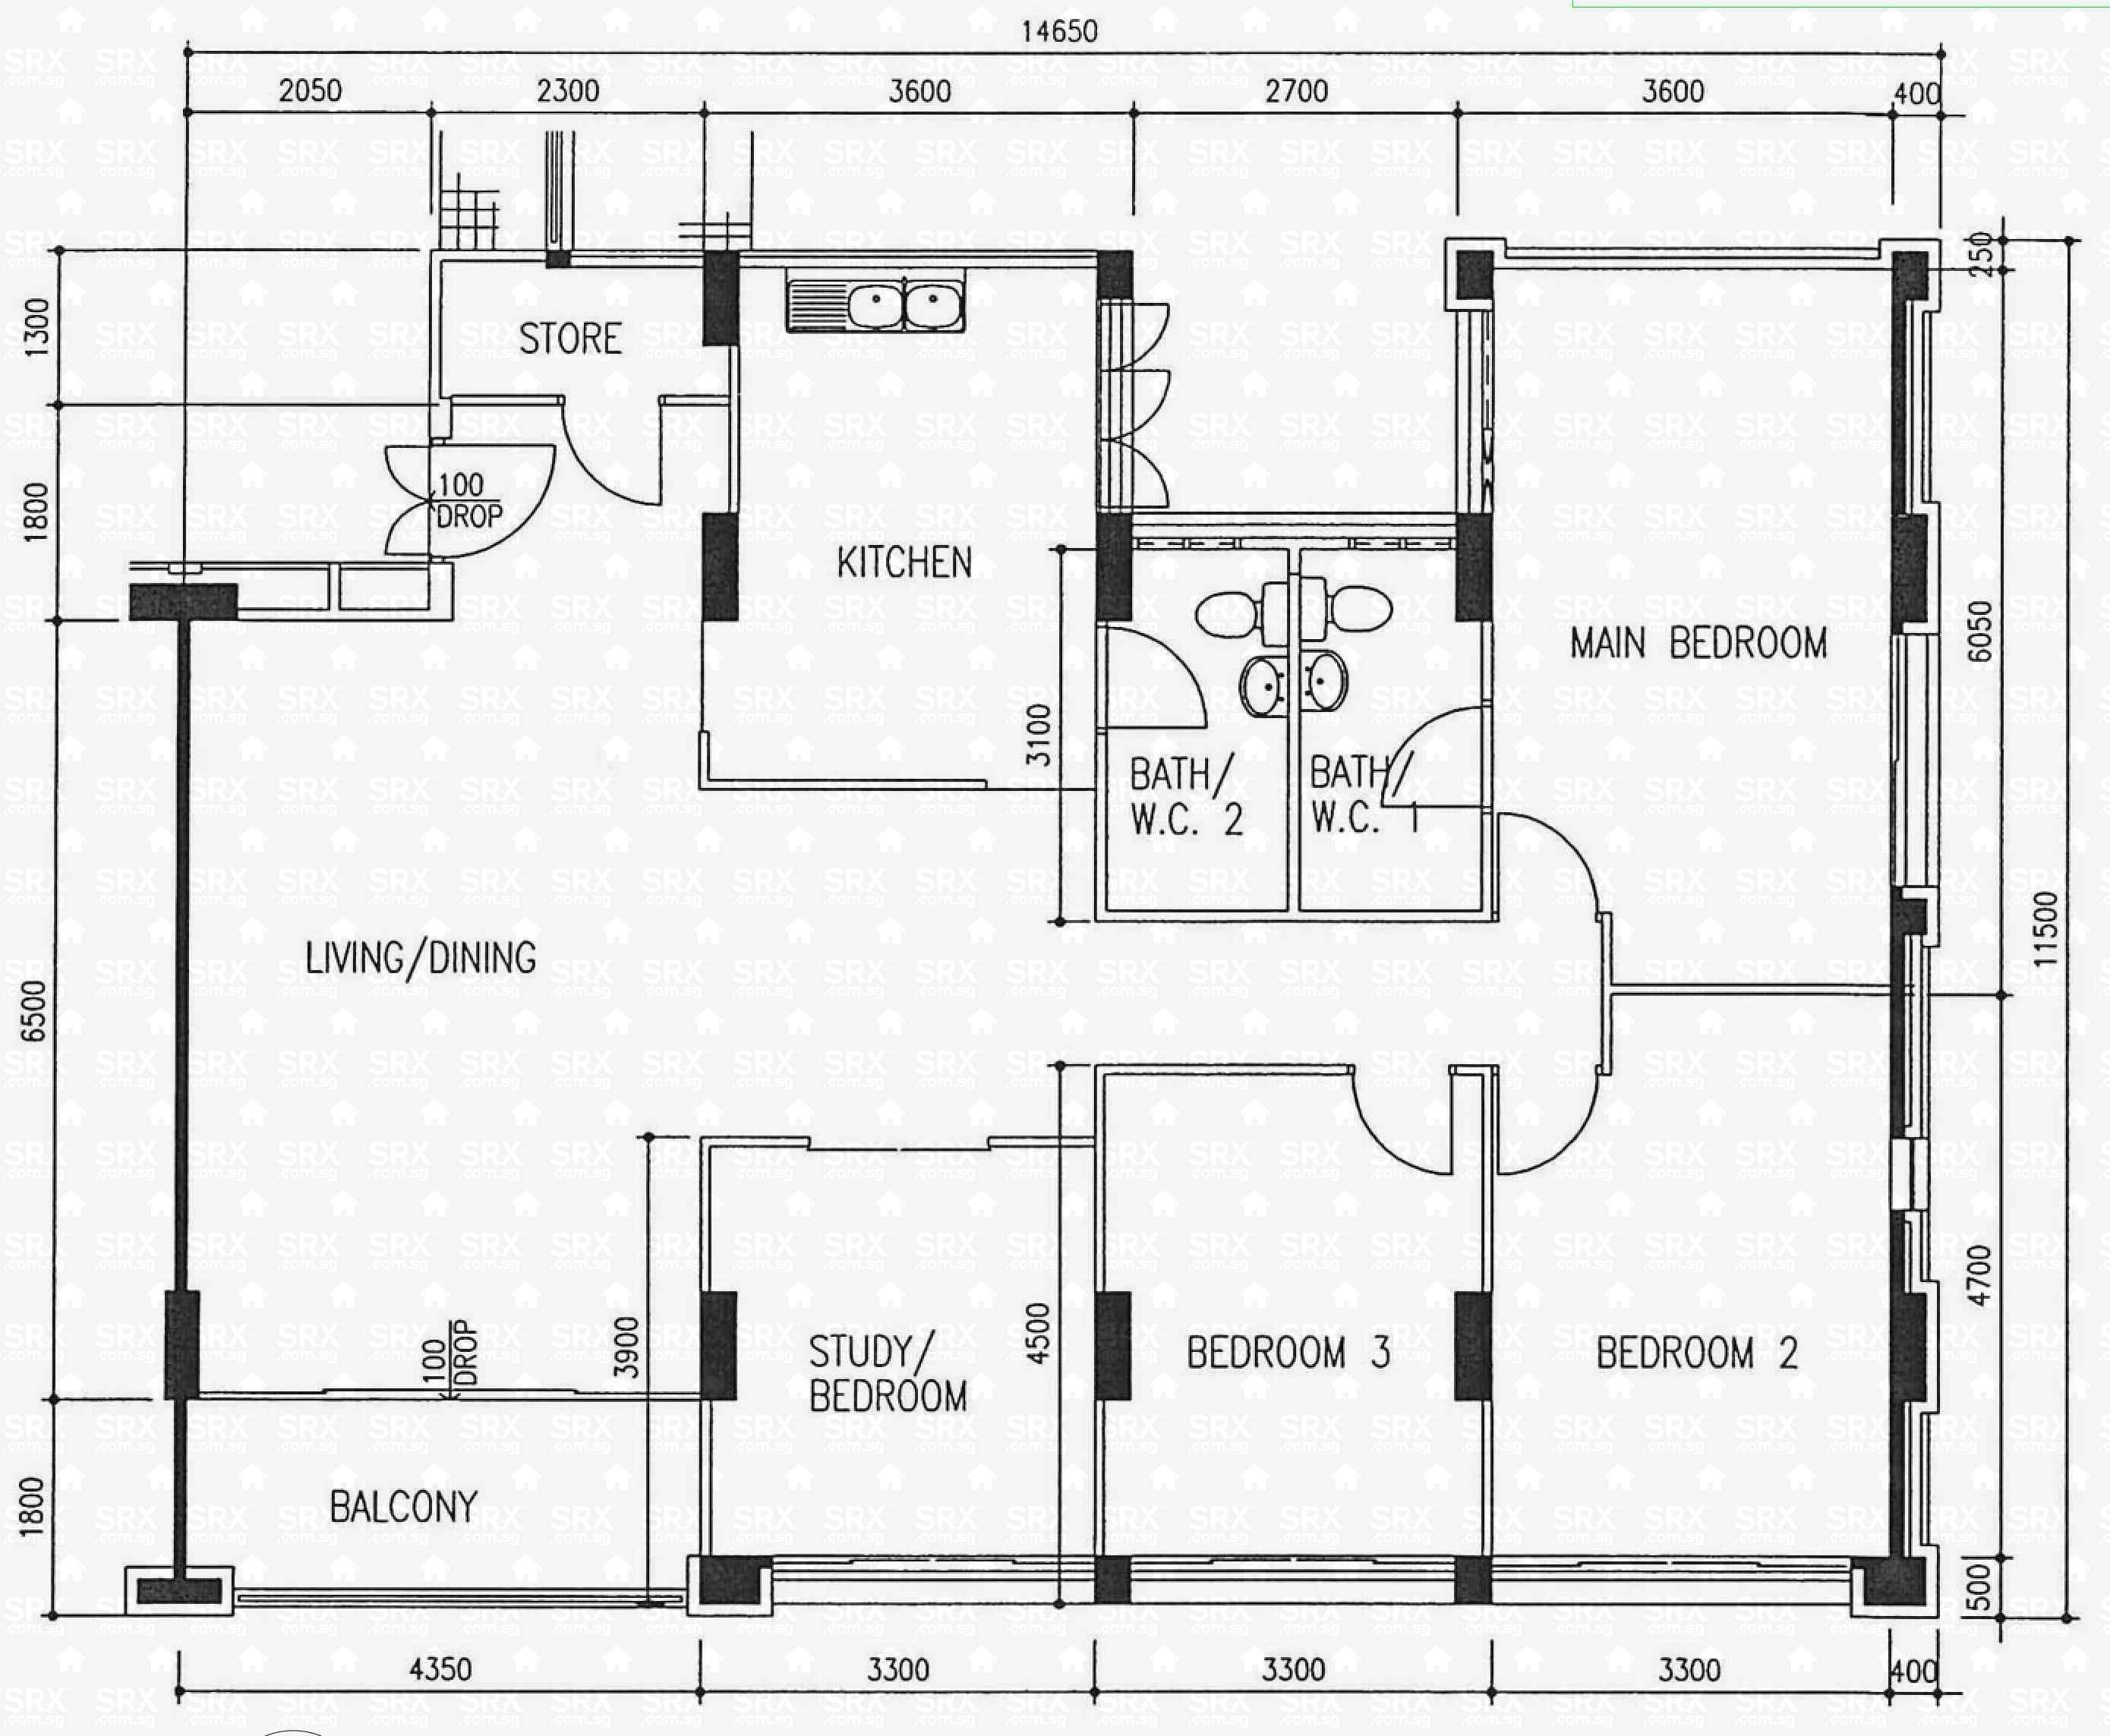 564 hougang street 51 s 530564 hdb details srx property for Plan 51